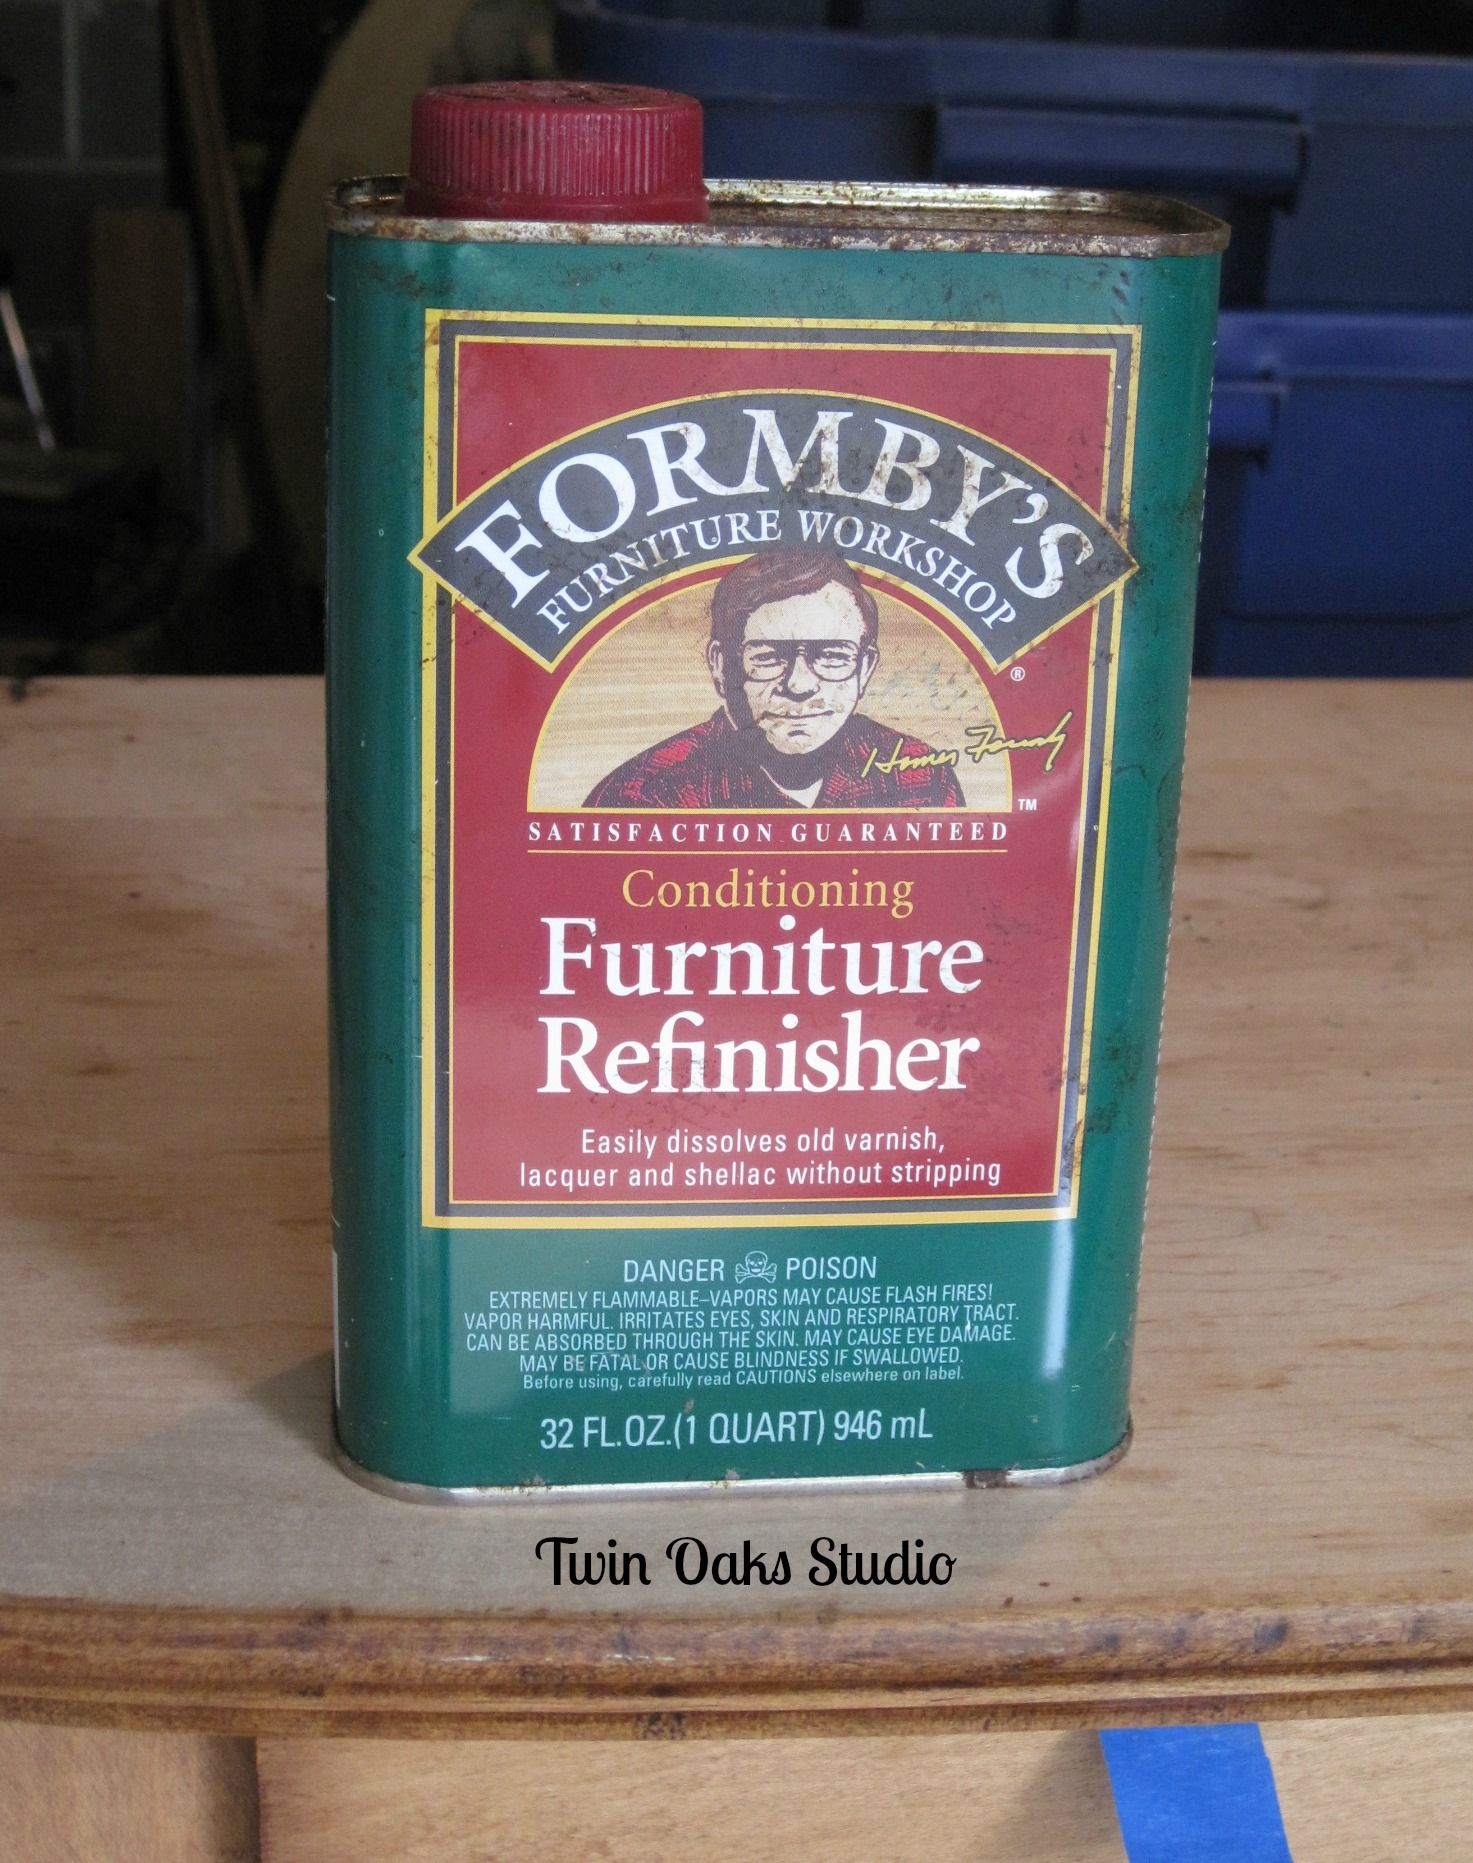 Refinishing antique dressers: Using Formby's Furniture Refinisher - Refinishing Antique Dressers: Using Formby's Furniture Refinisher